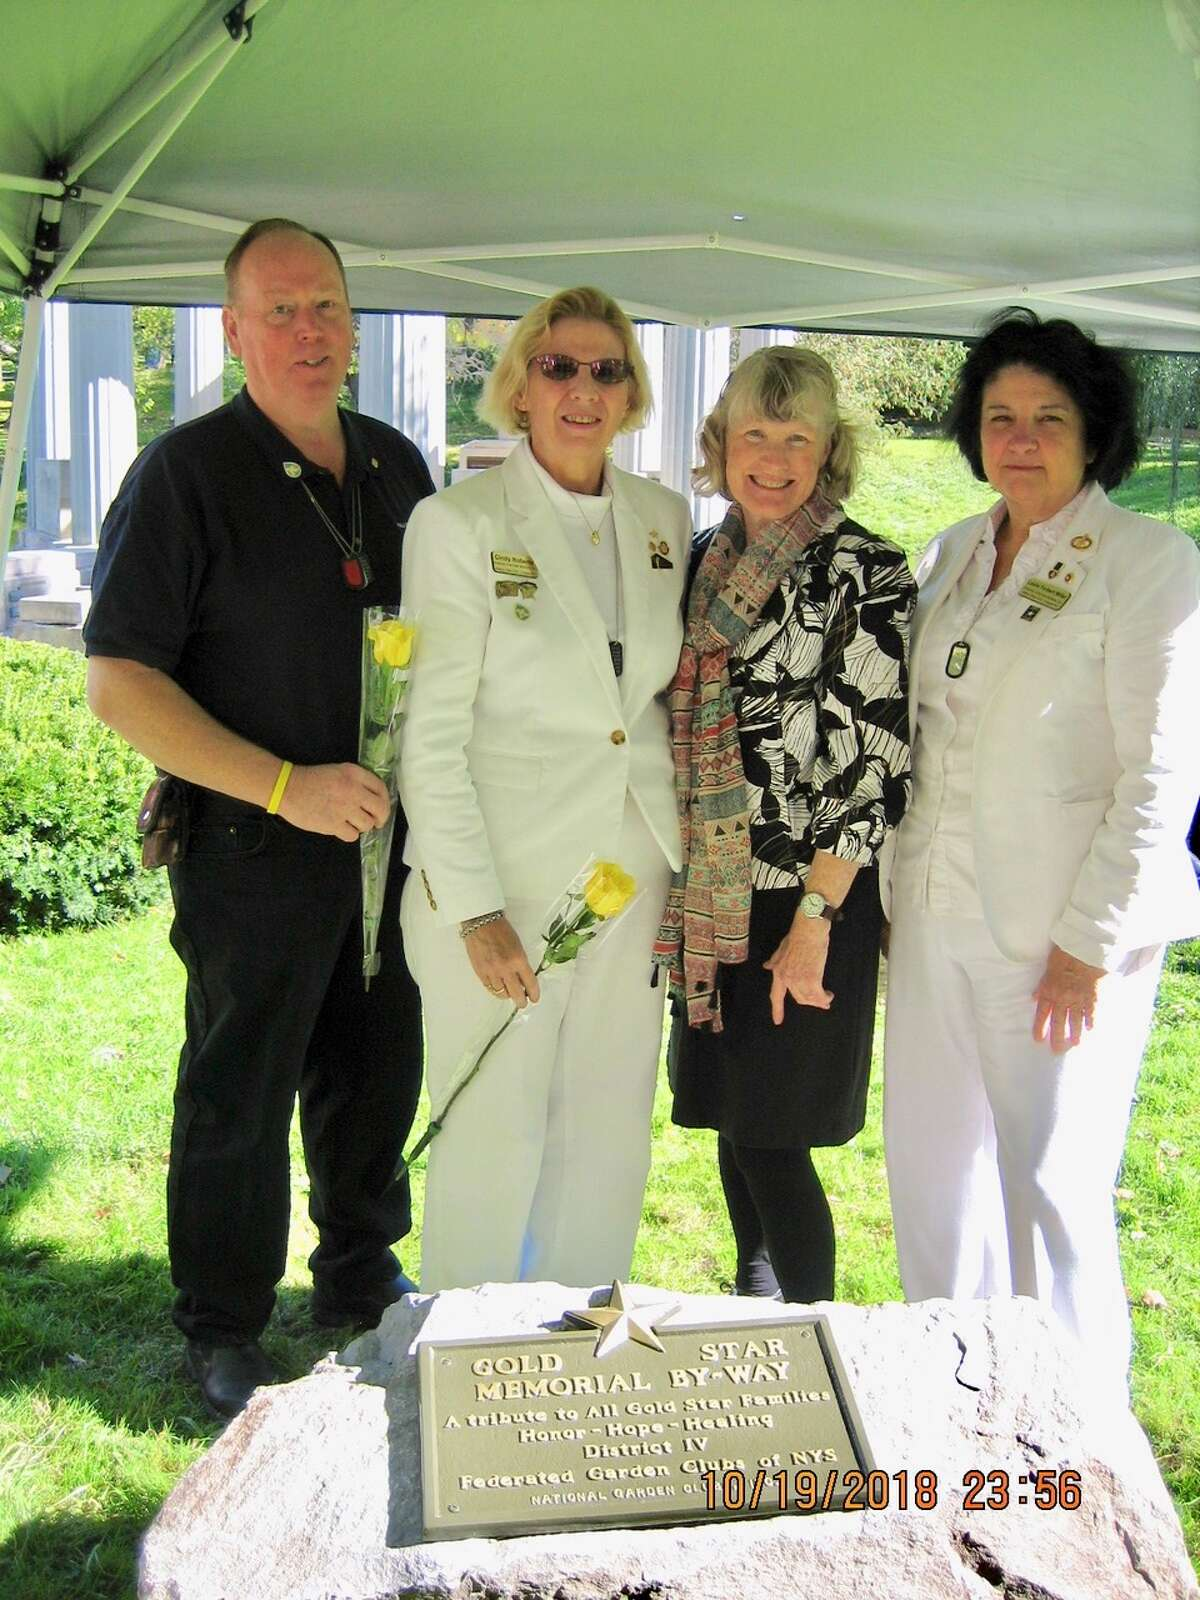 Bob and Cindy Roberts (Gold Star parents), Charlanne Ryan-Donough, Assistant Director of District IV Garden Clubs, and Leslie Forbet Miller ( Gold Star mother) attend an Oct. 20 Gold Star Mother's event in Saratoga Springs. (Provided photo)